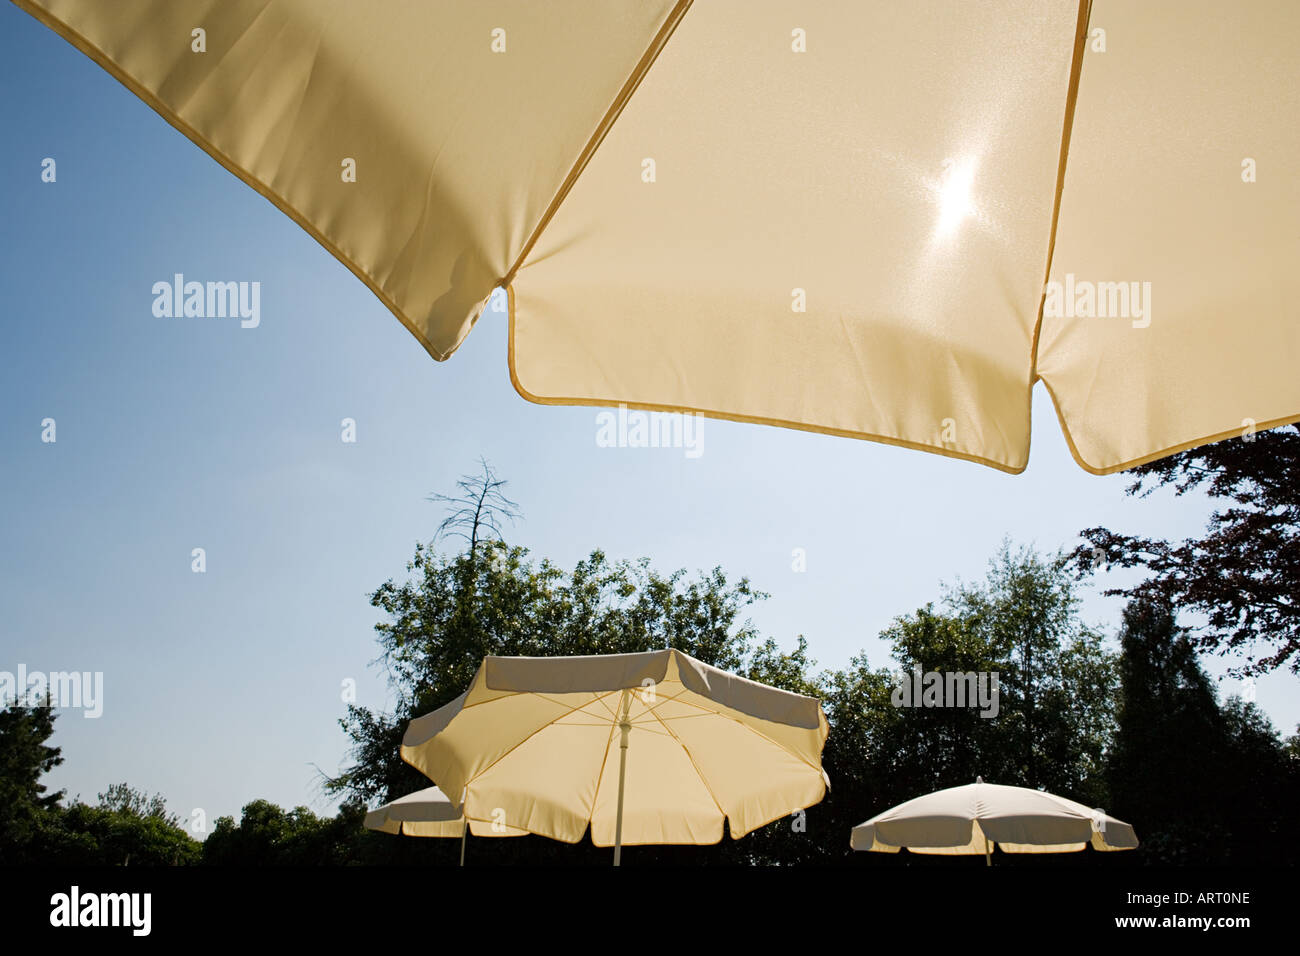 parasols stockfotos parasols bilder alamy. Black Bedroom Furniture Sets. Home Design Ideas